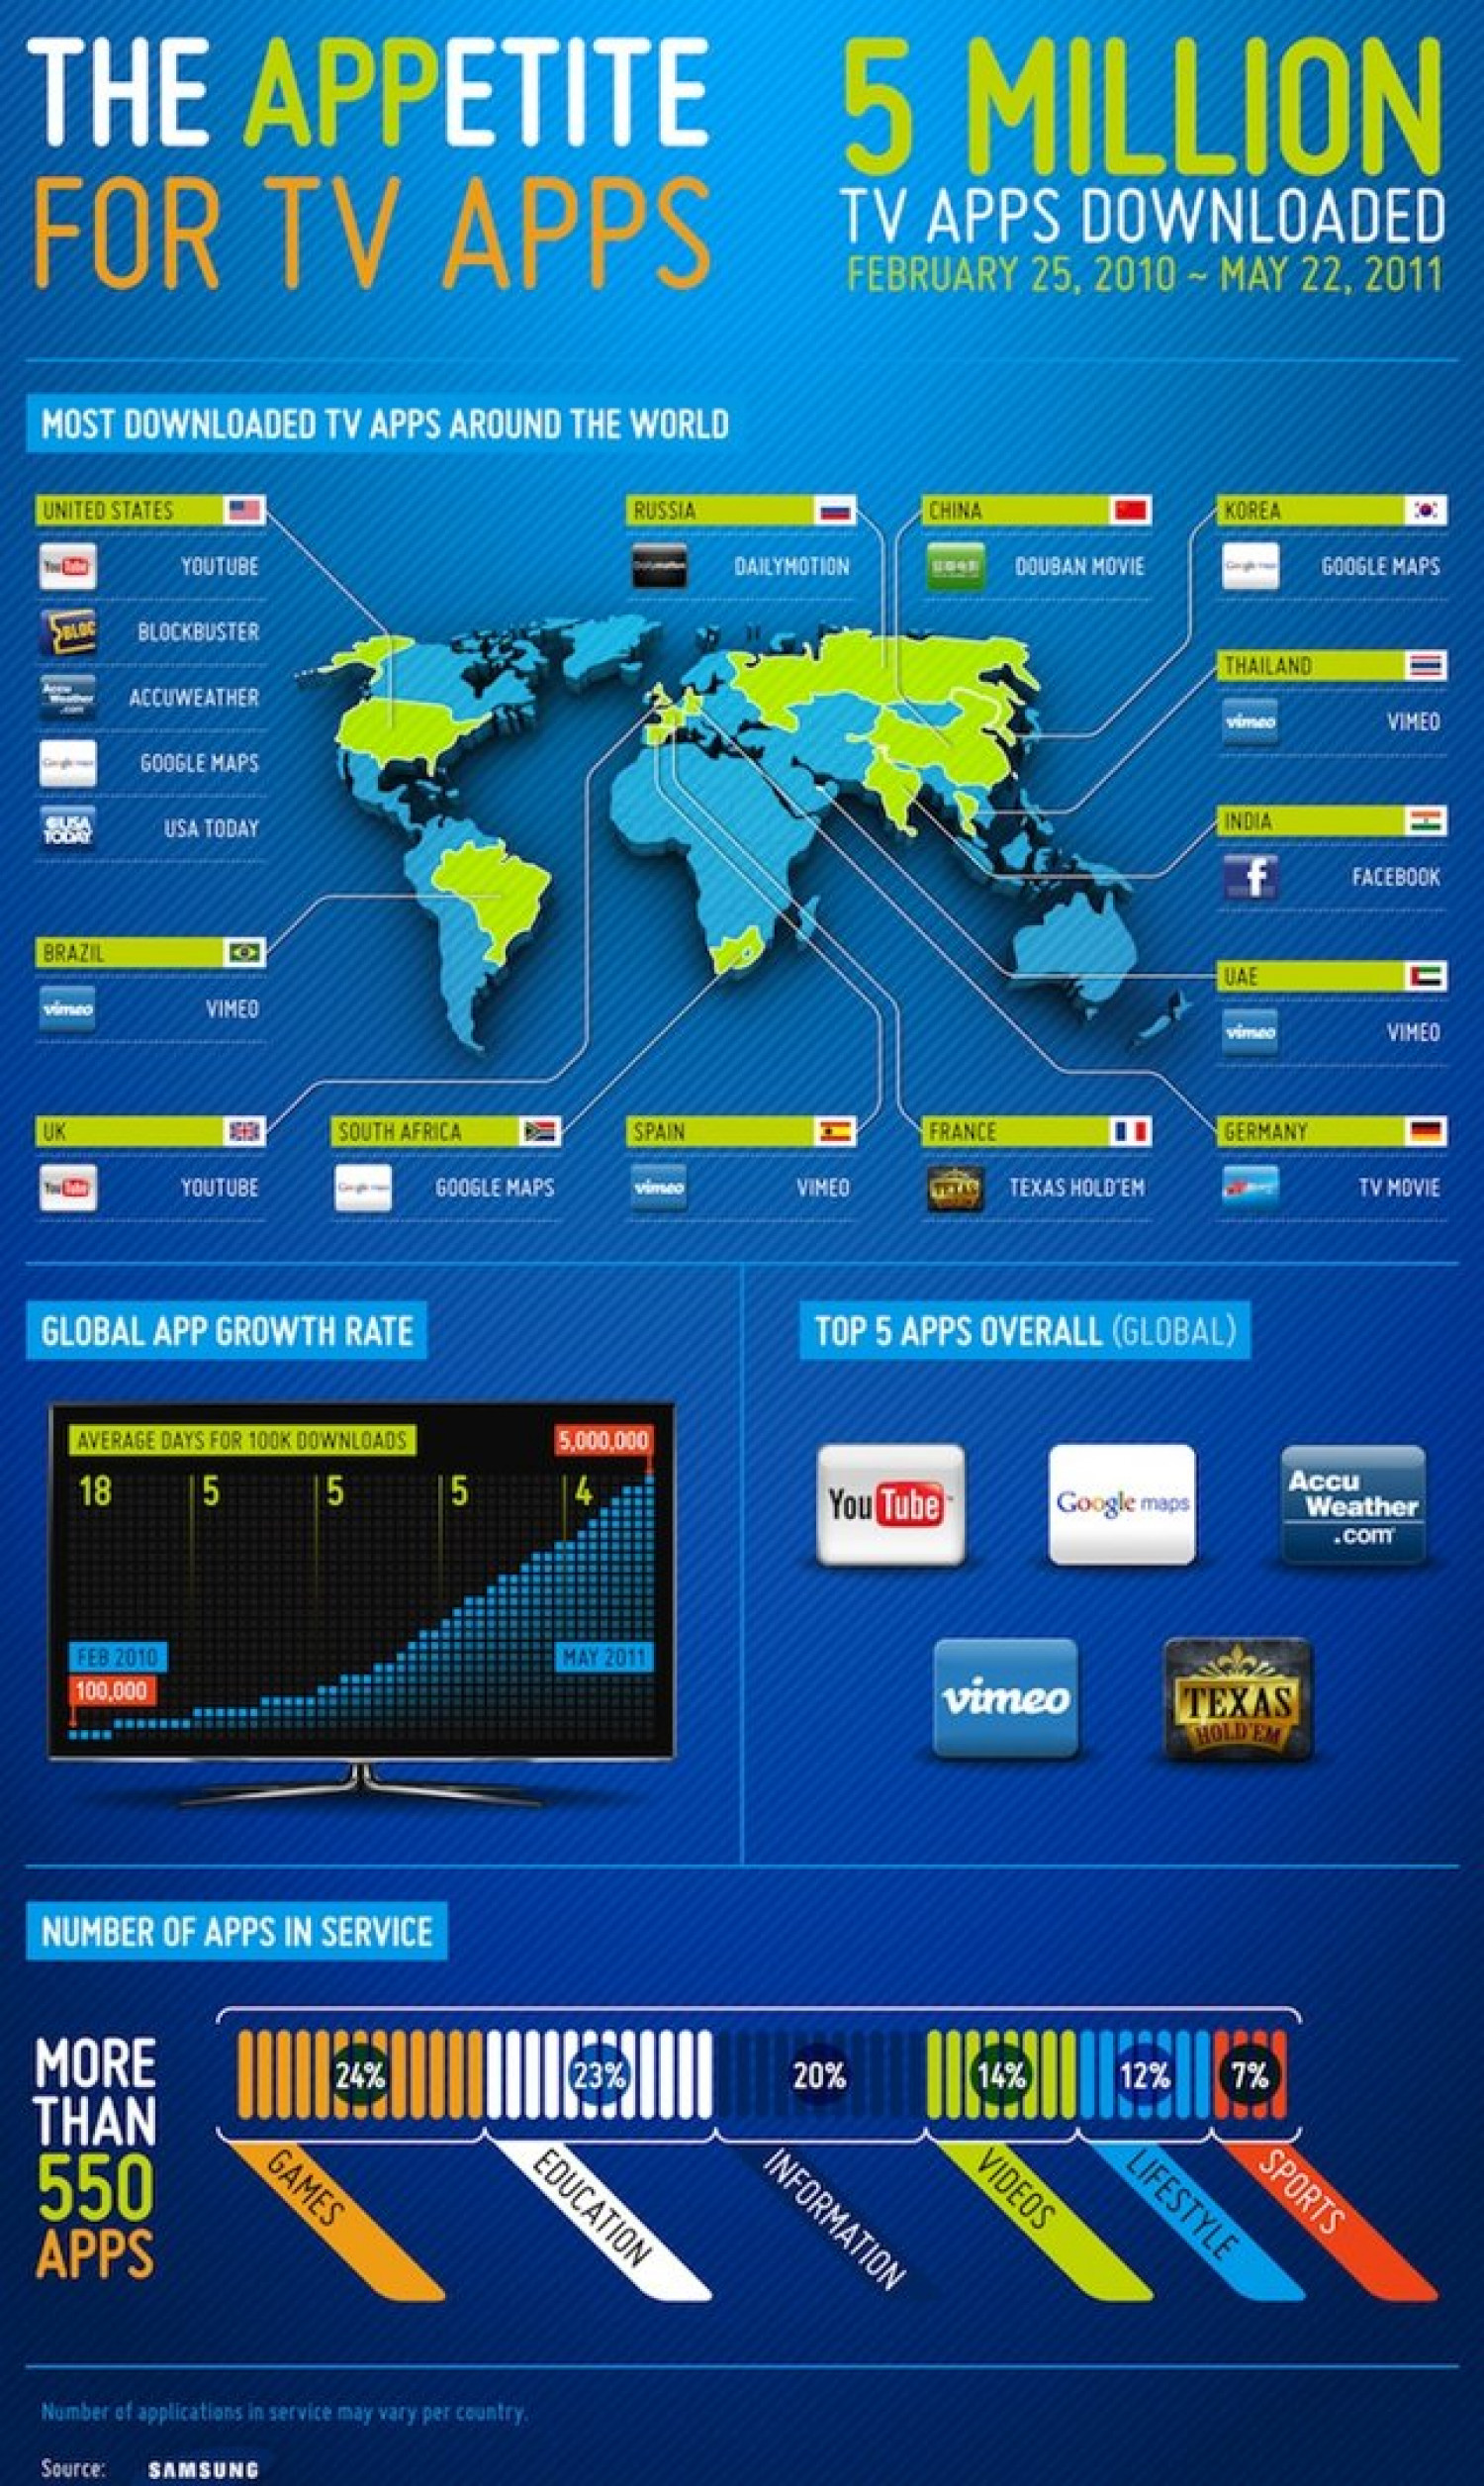 Samsung Smart TV Apps surpasses 5 million downloads Infographic